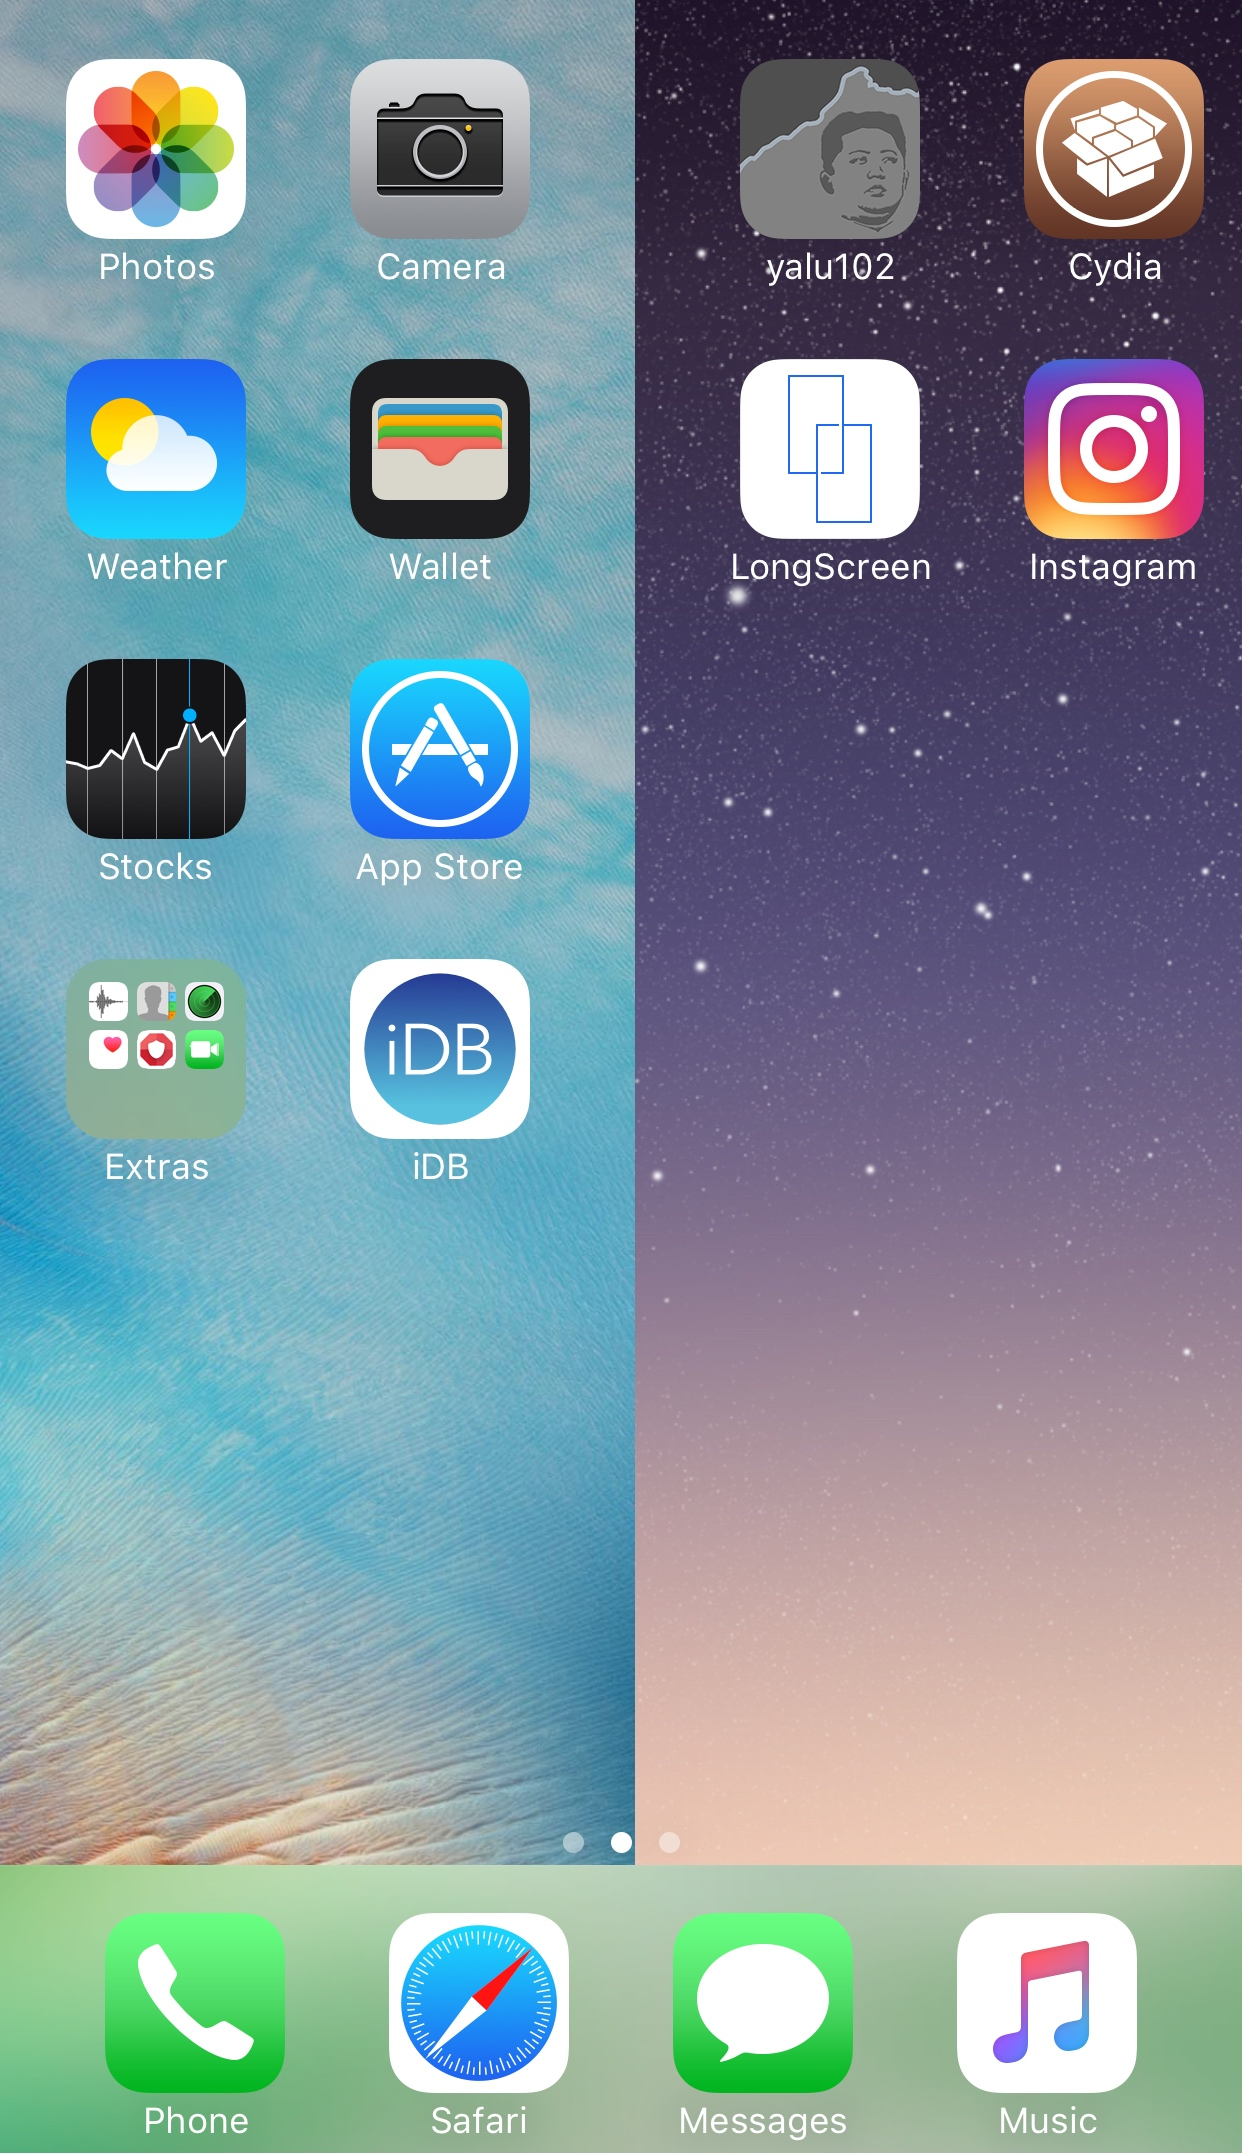 Supercharge your iPhone wallpaper options with PanoramaPapers